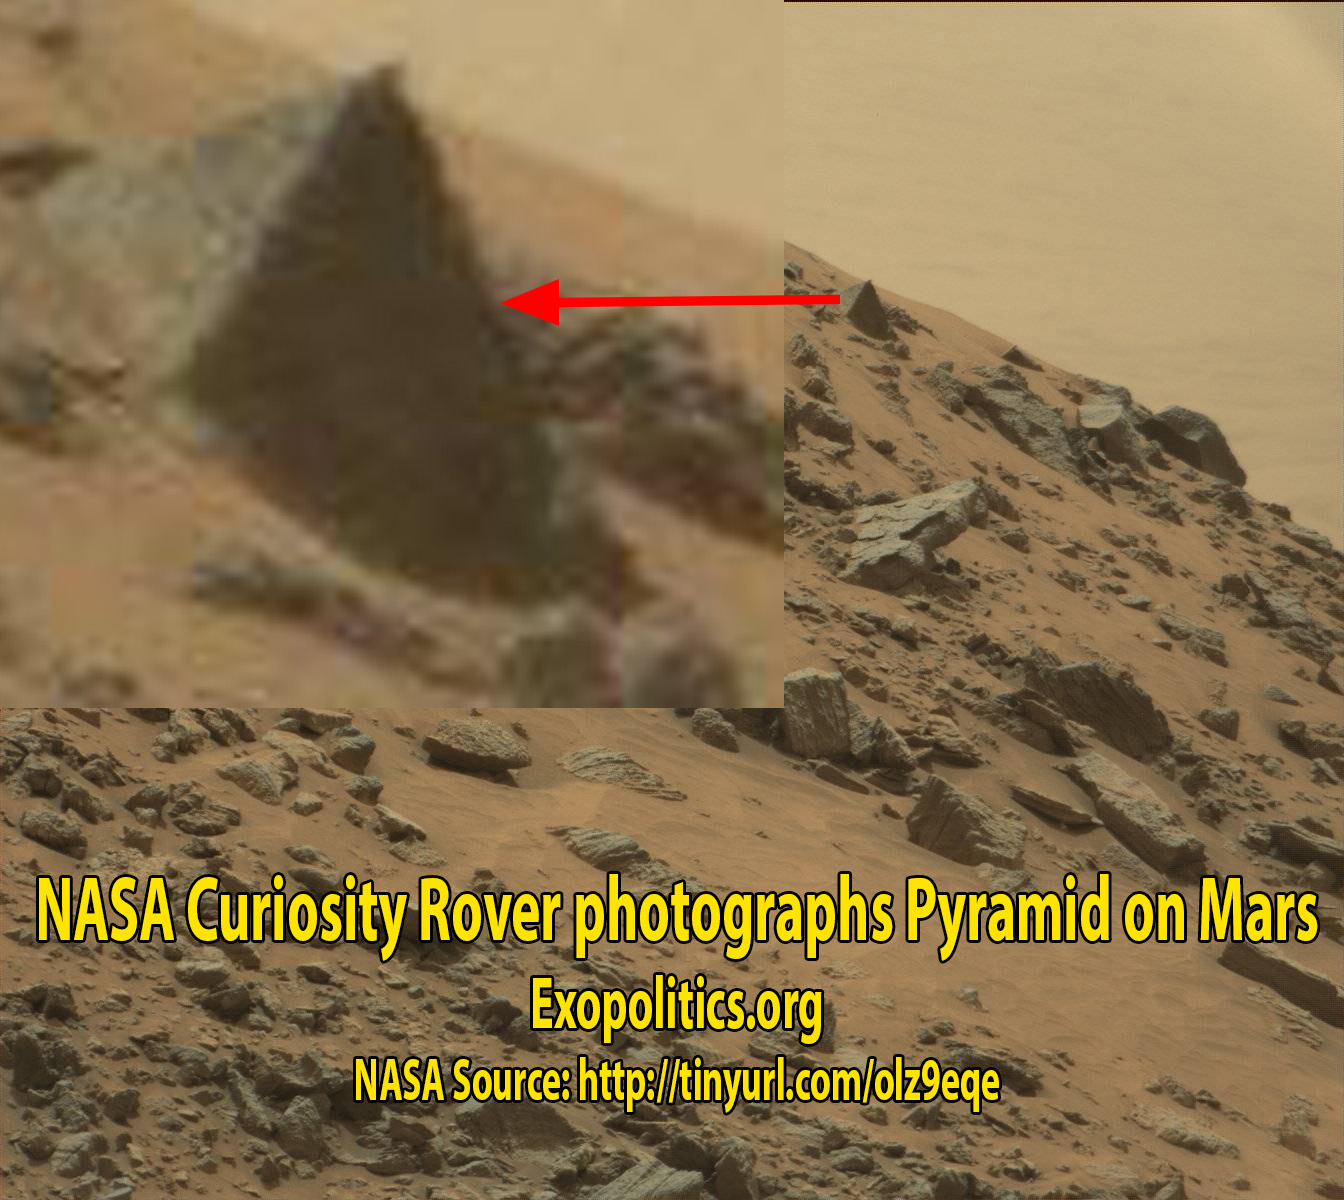 http://exopolitics.org/wp-content/uploads/2015/06/pyramid-on-Mars1.jpg